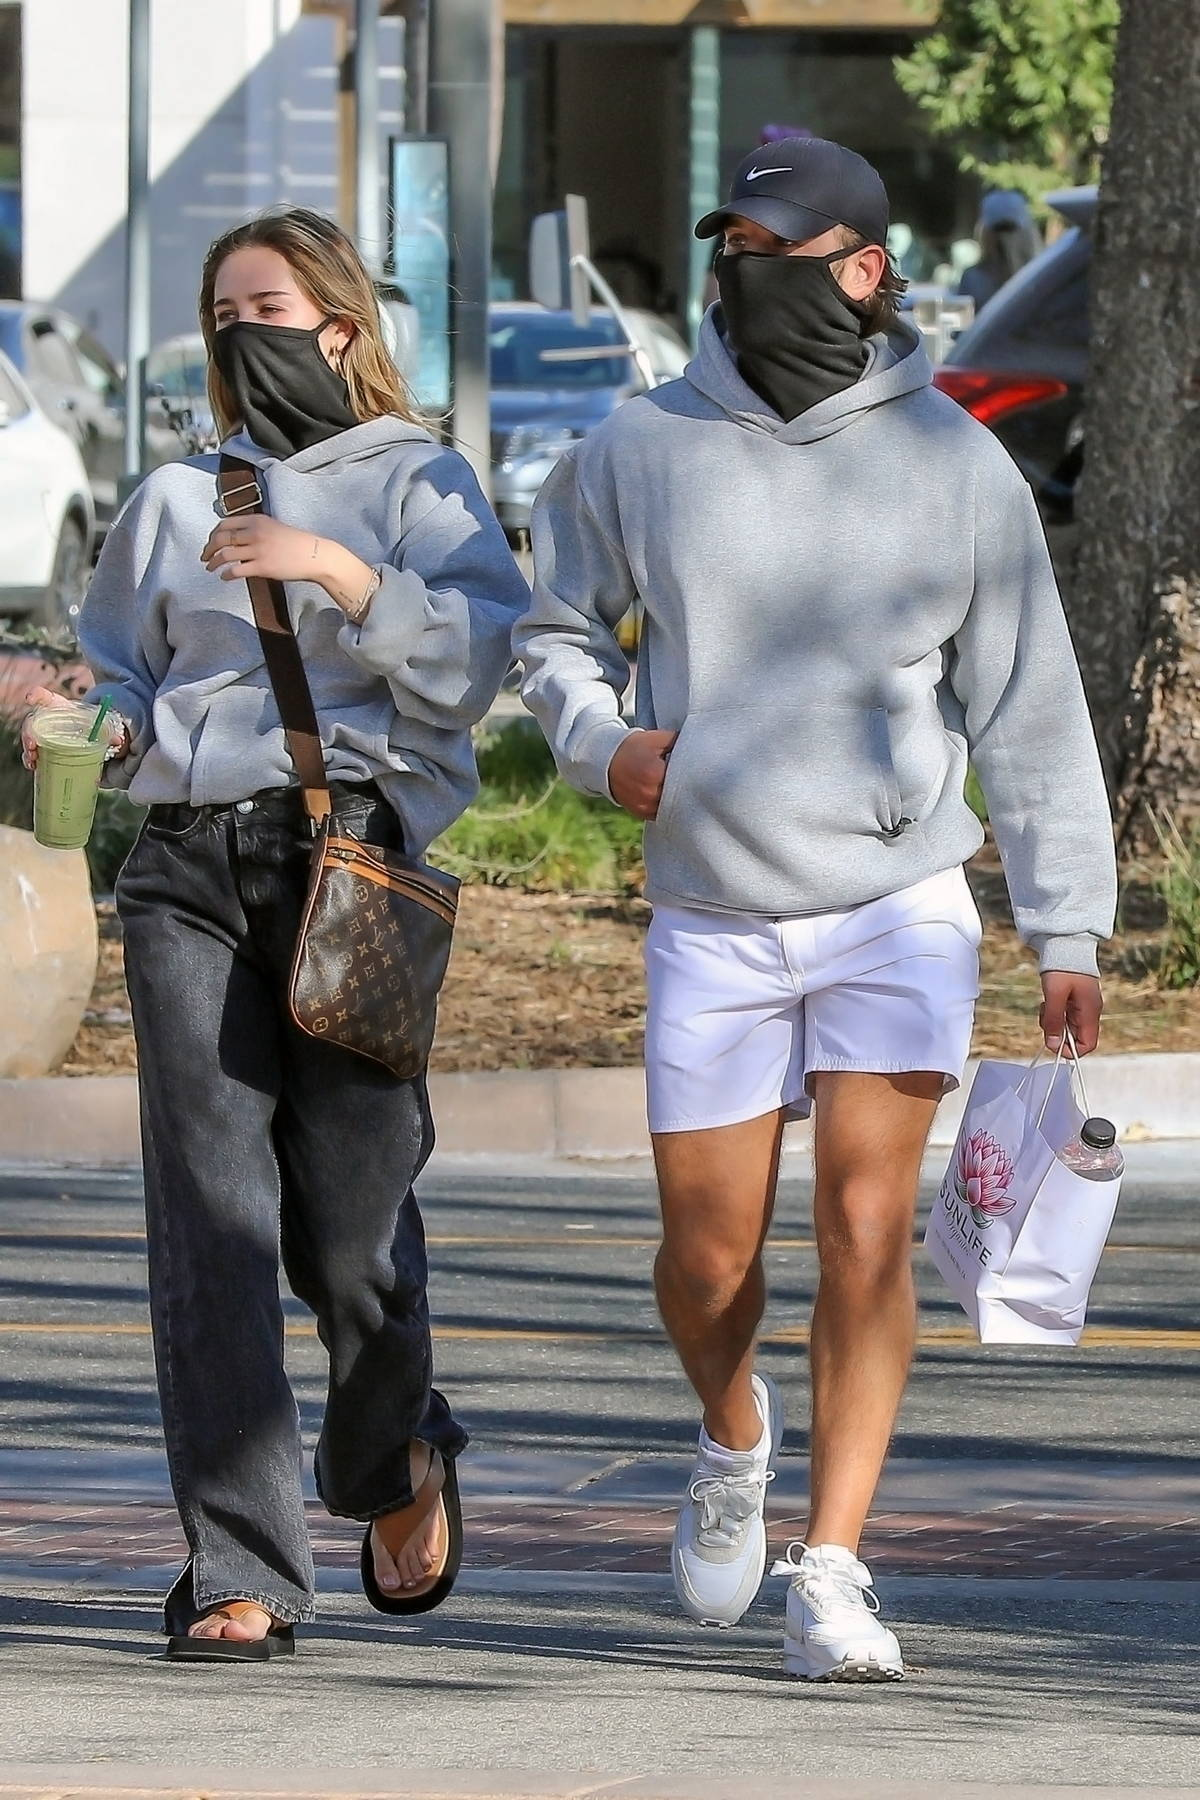 Delilah Hamlin and boyfriend Eyal Booker seen wearing matching hoodies from 'PrettyLittleThing' in Malibu, California